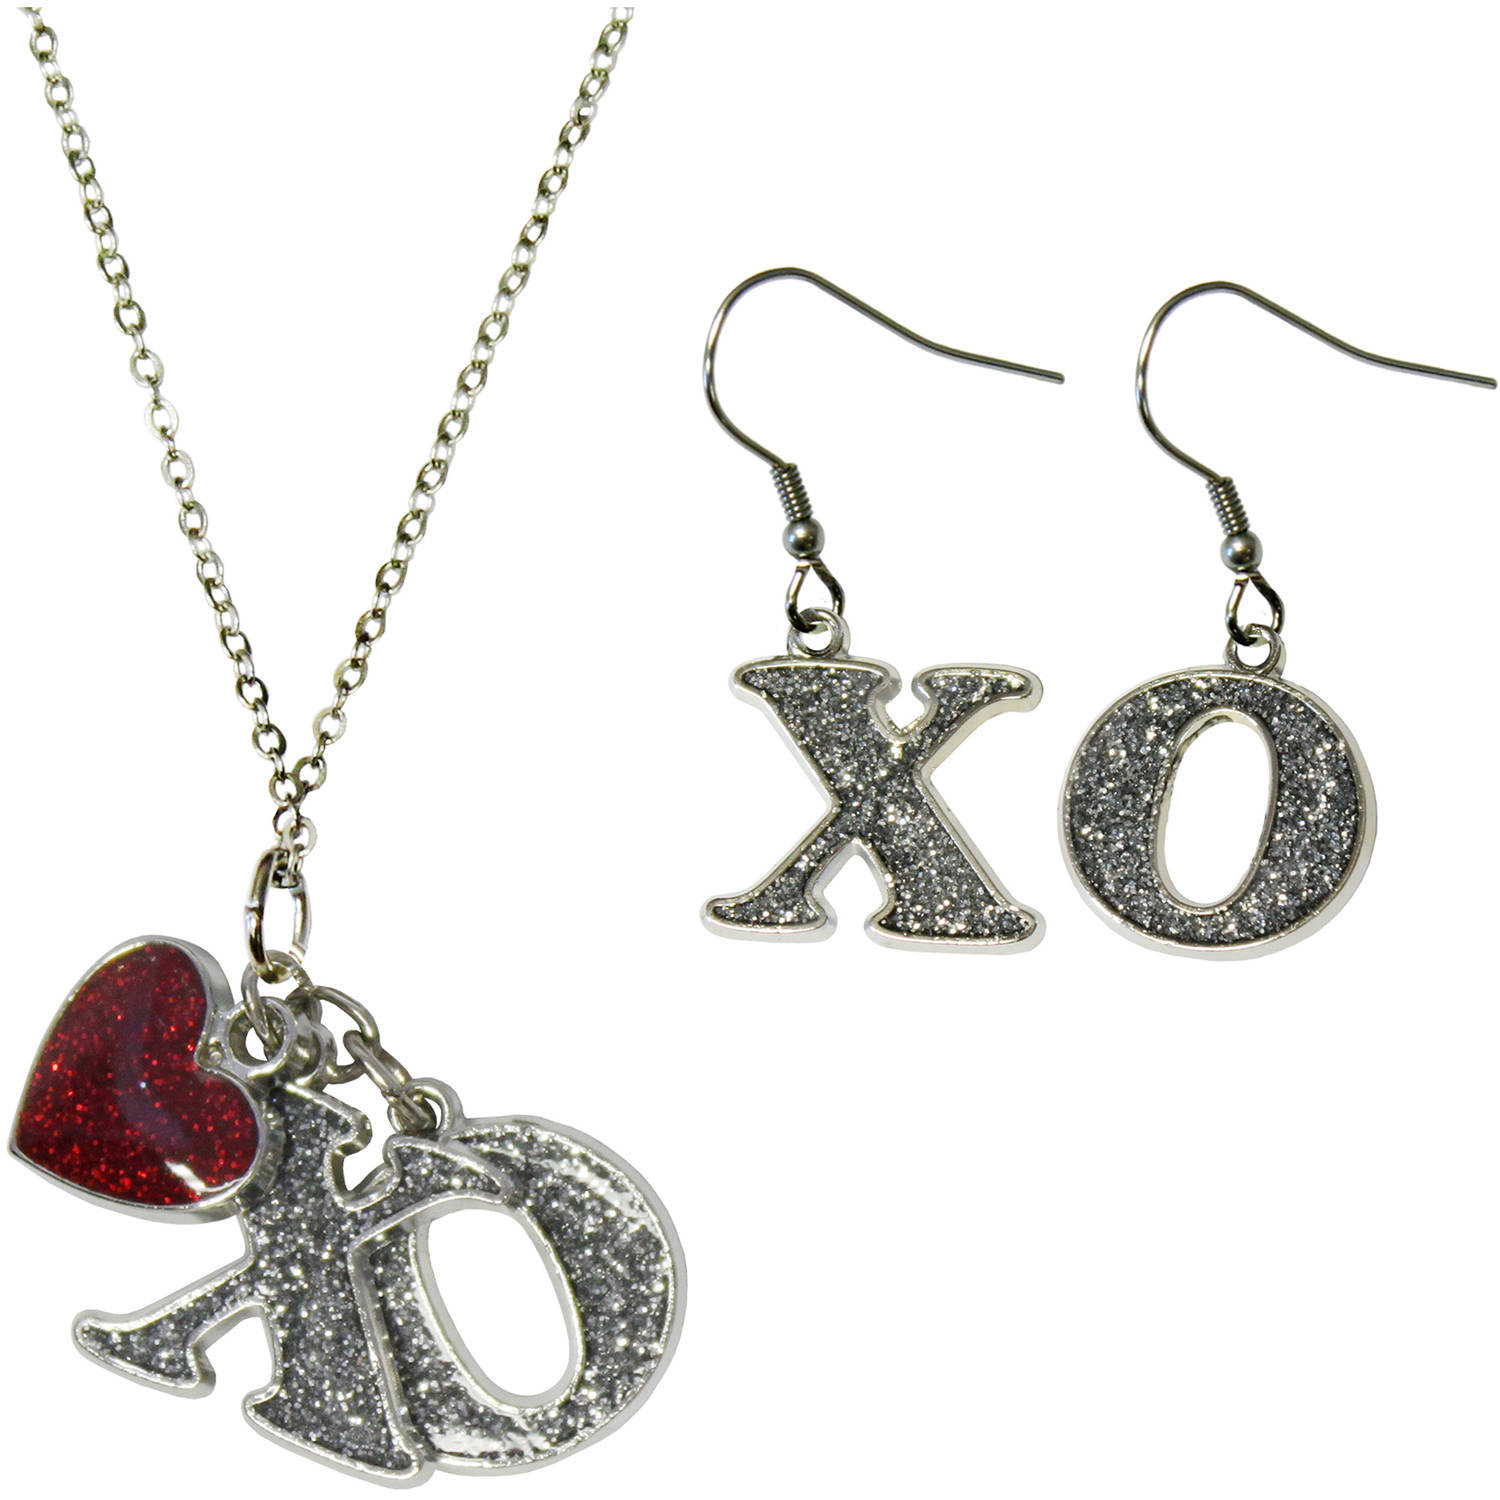 gloria duchin xo earrings and necklace jewelry set